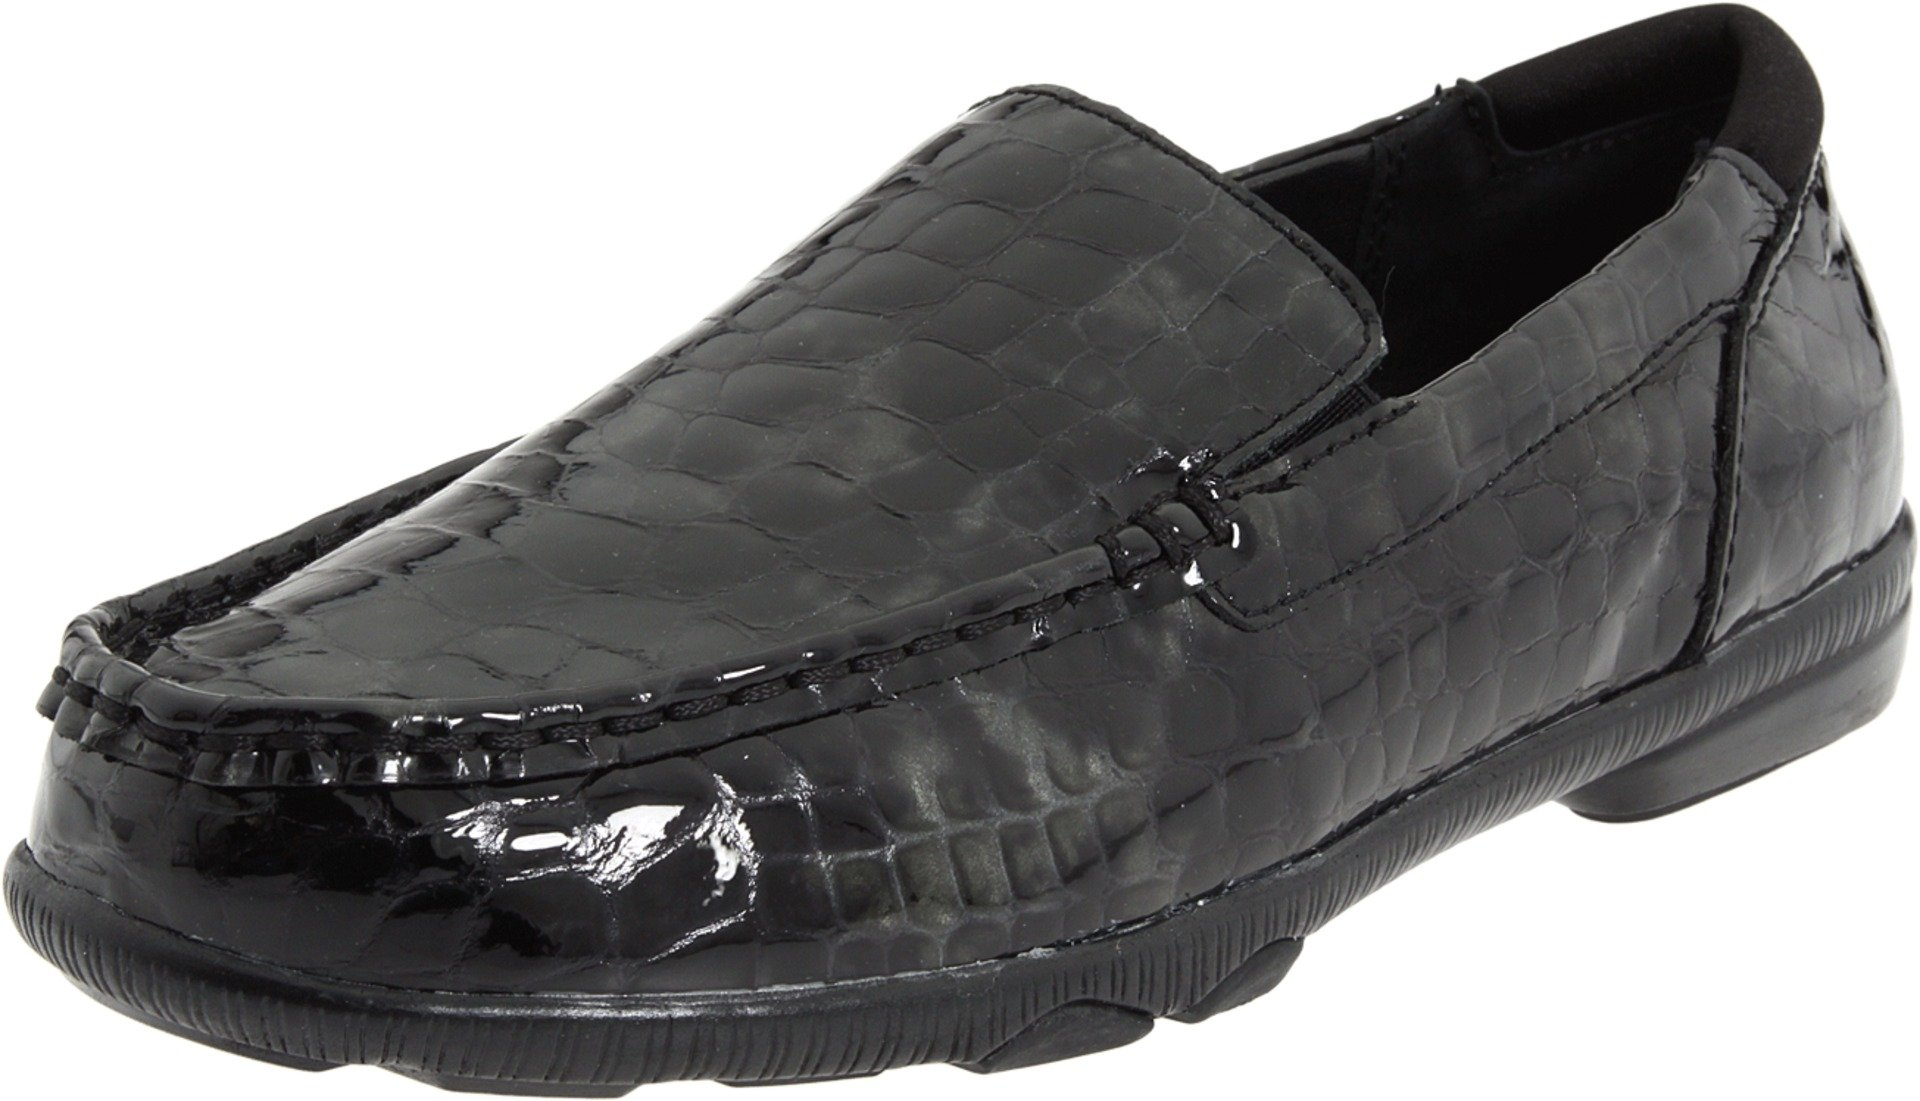 Aetrex Women's Essence Loafers - Kimberly,Black Croc,6 M US